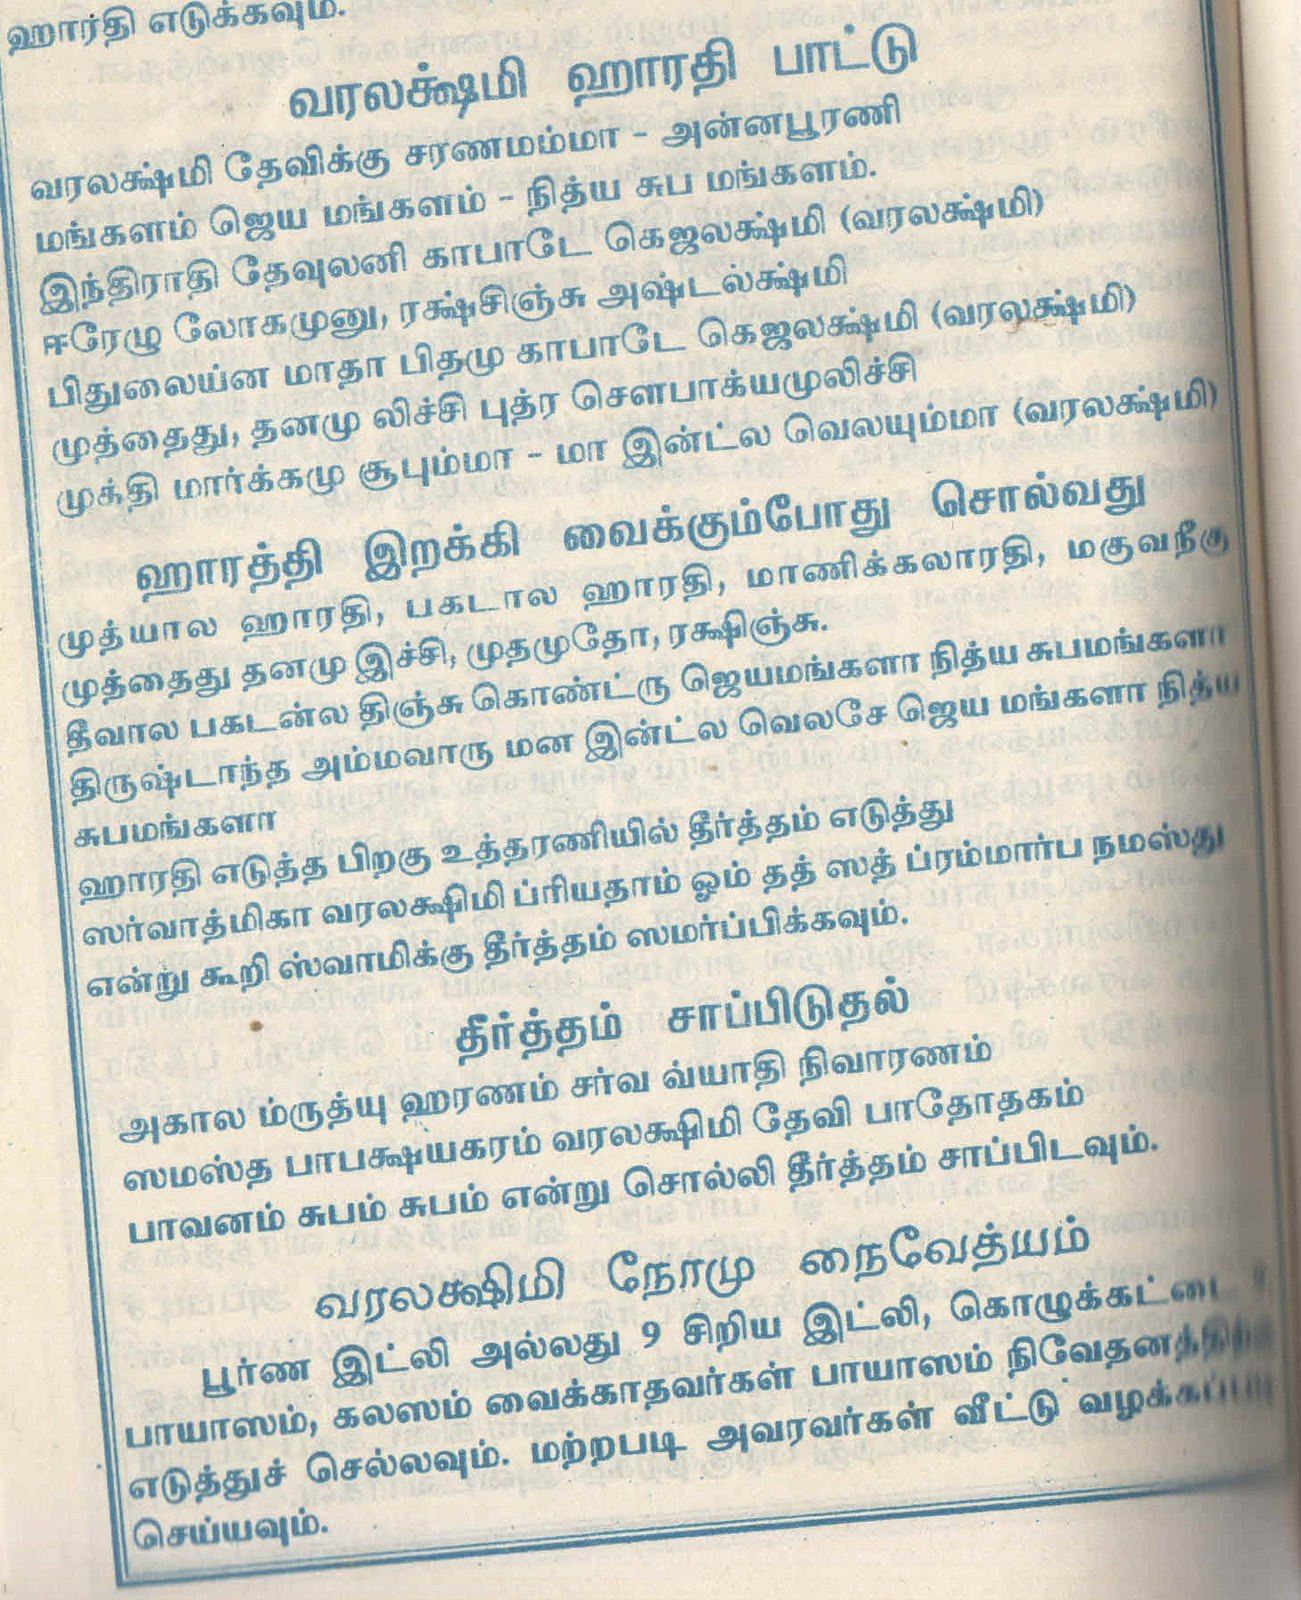 dhanam tharum vairavan lyrics in tamil pdf